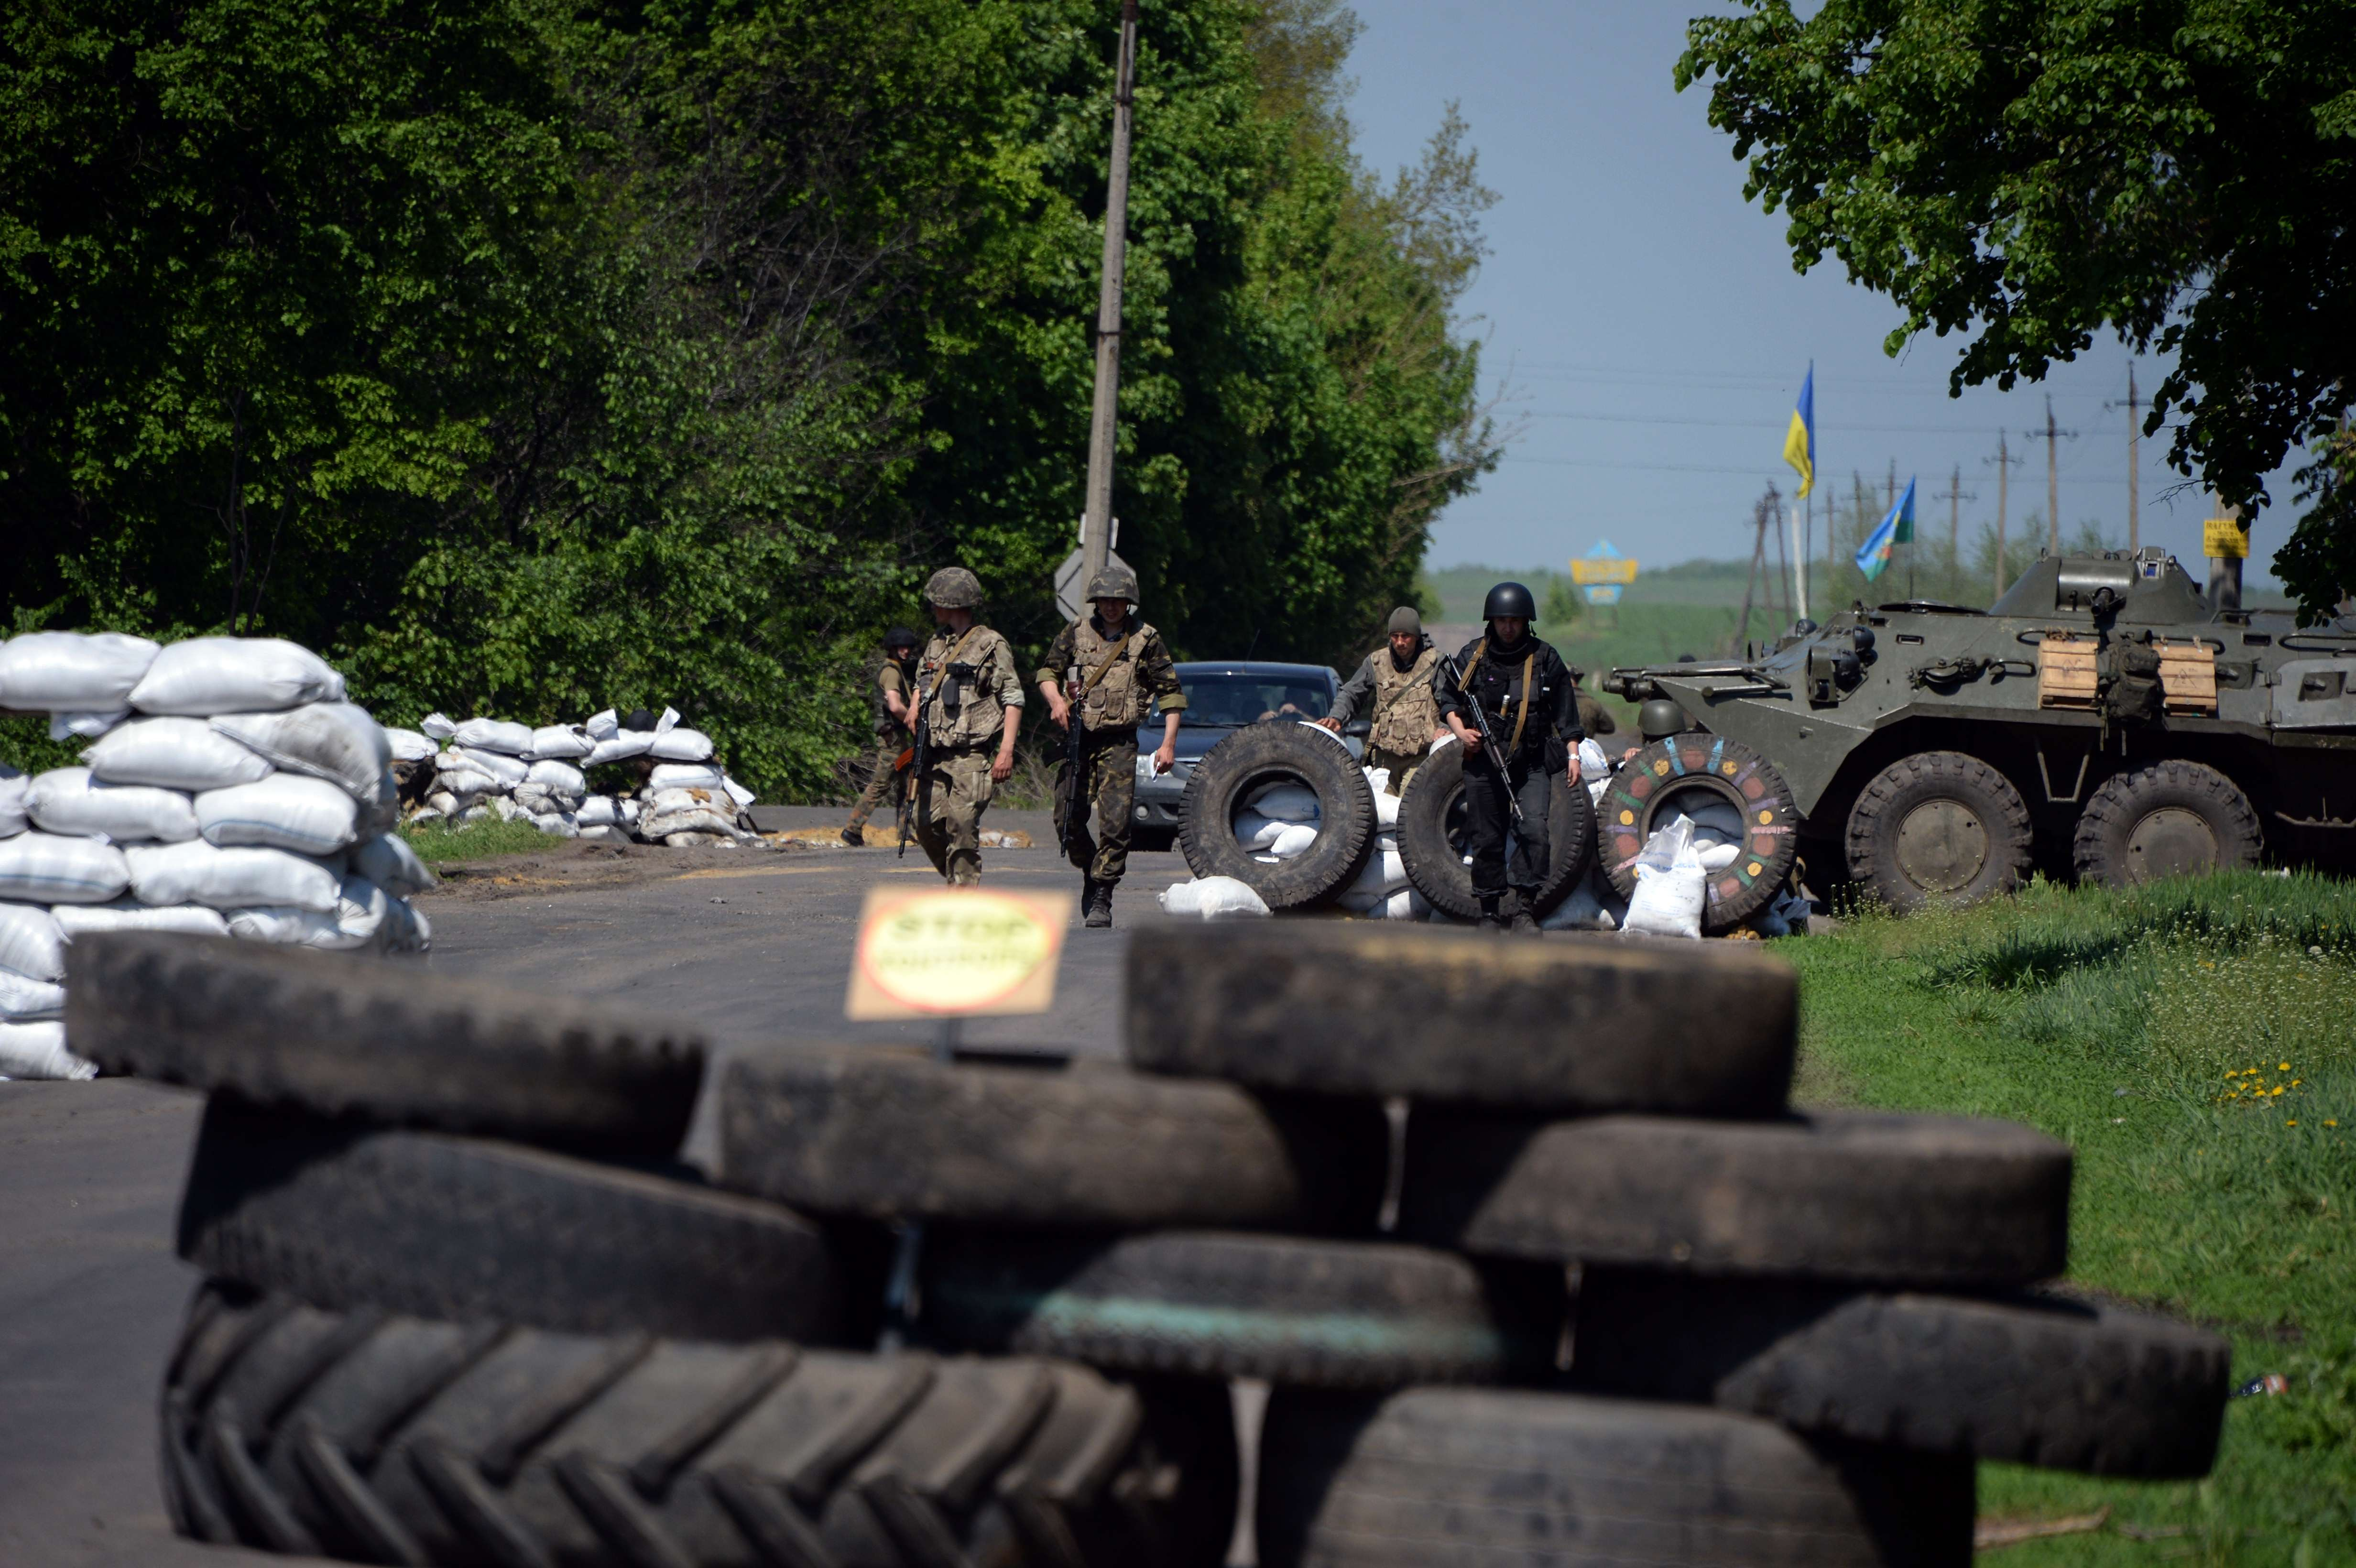 Ukrainian soldiers take position at a checkpoint near the eastern Ukranian city of Slavyansk on May 4, 2014. Ukraine vowed on May 4 to broaden its operation against pro-Russian rebels as the crisis-hit country observed a second day of mourning after violence that left more than 50 people dead.   (AFP PHOTO / VASILY MAXIMOV)